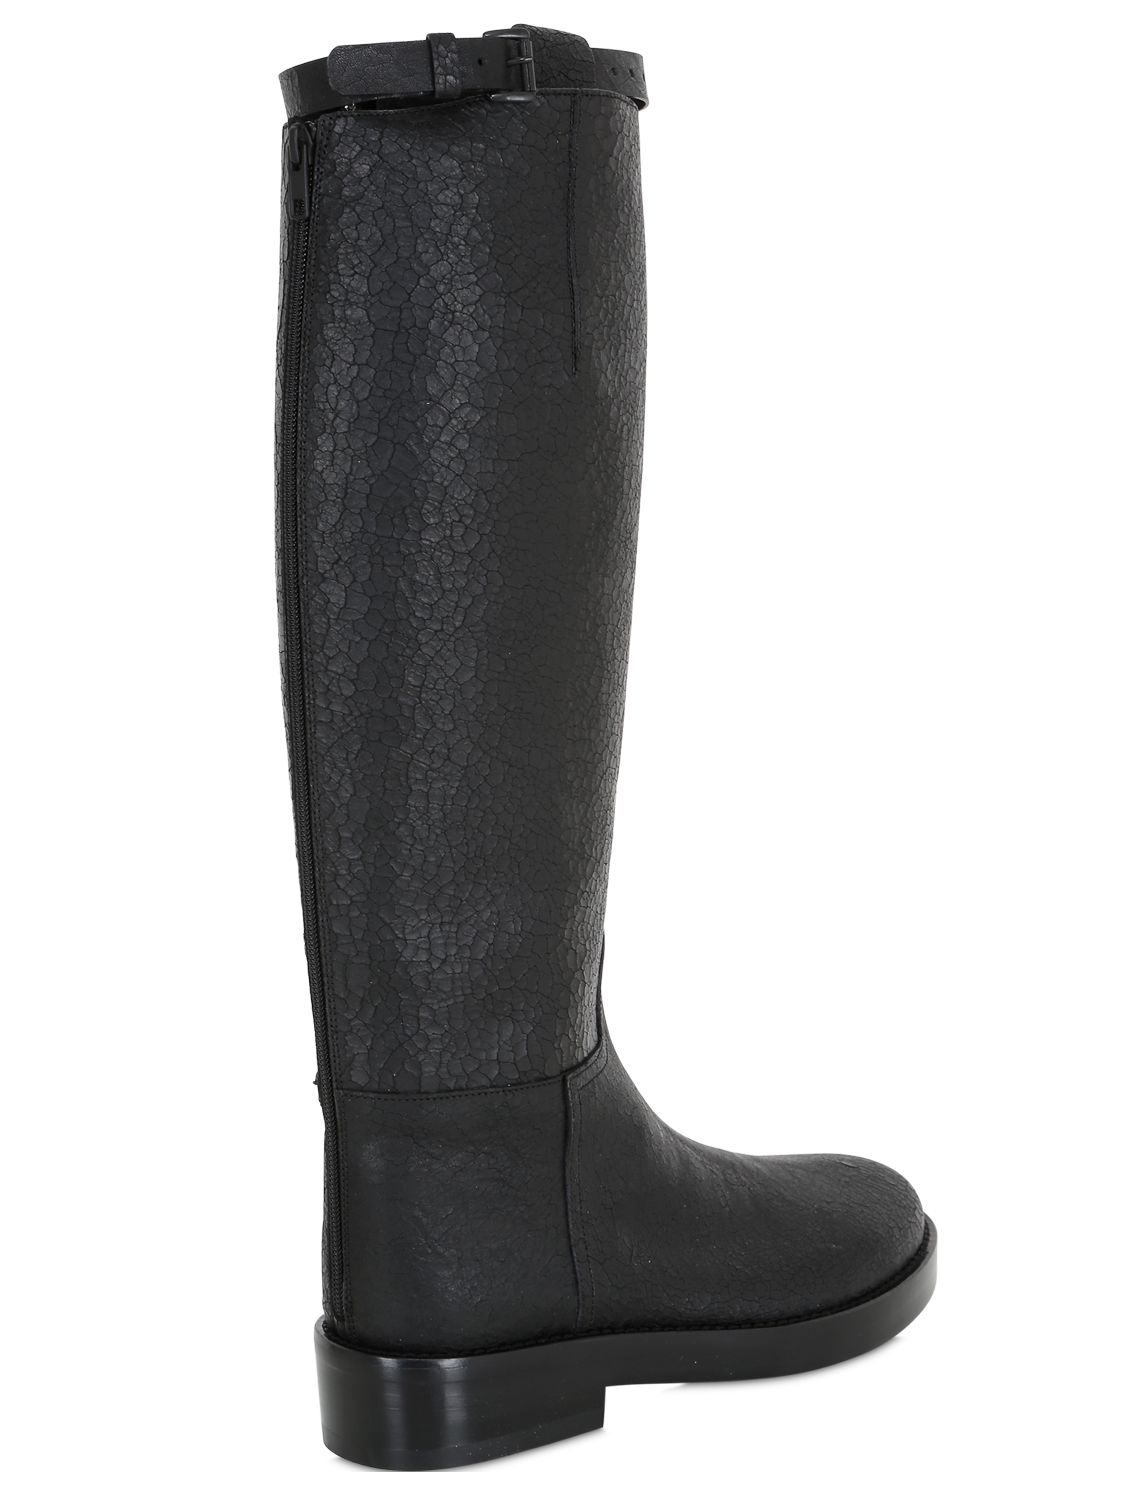 Ann Demeulemeester 30mm Crackled Leather Riding Boots in Black